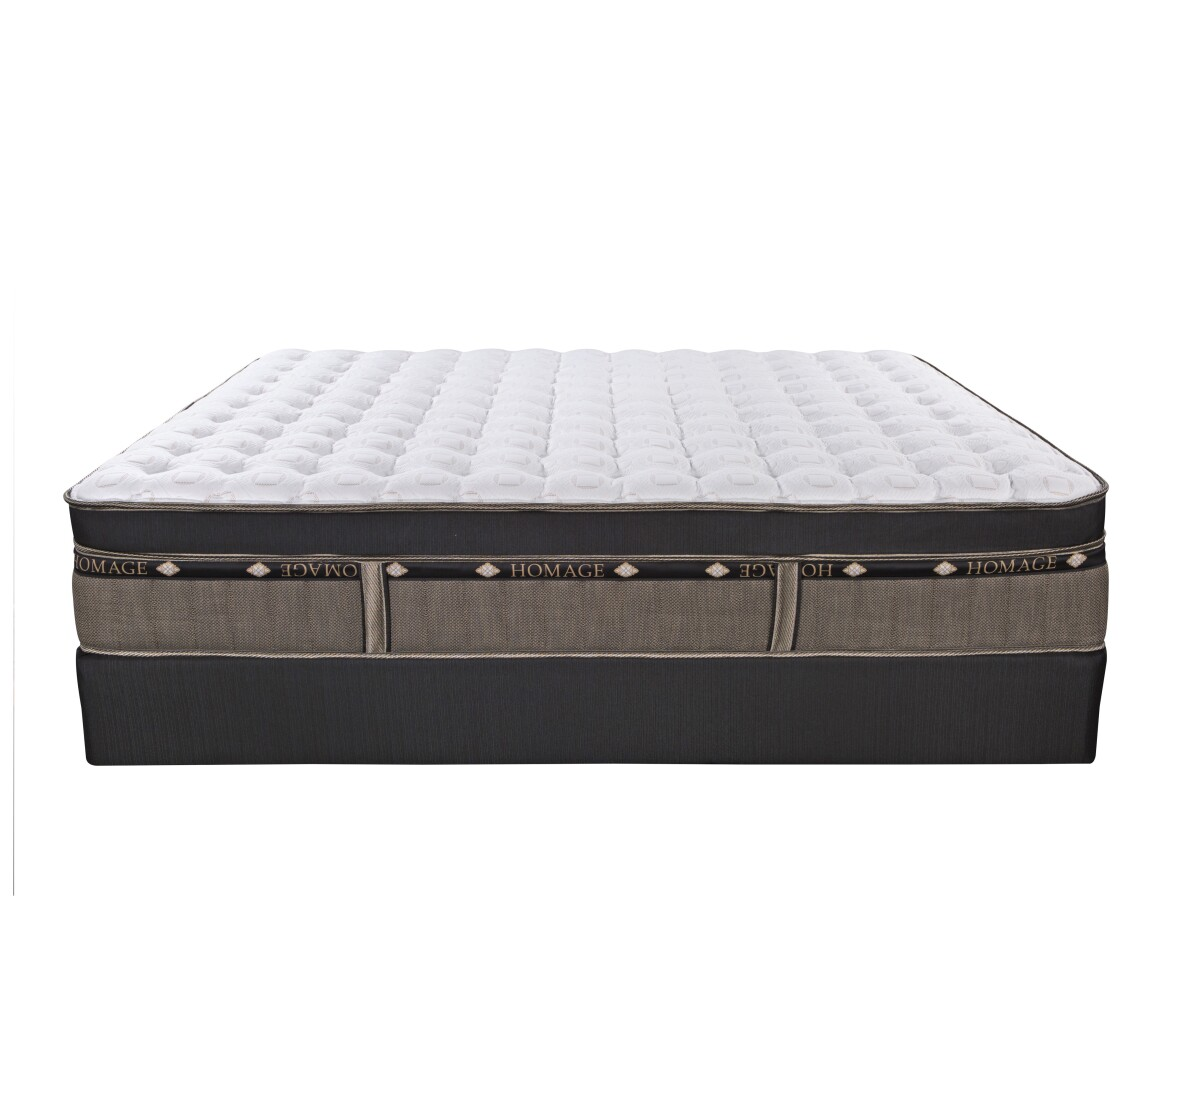 127149_Homage_Respect Plush Euro Top Mattress  (5).jpg